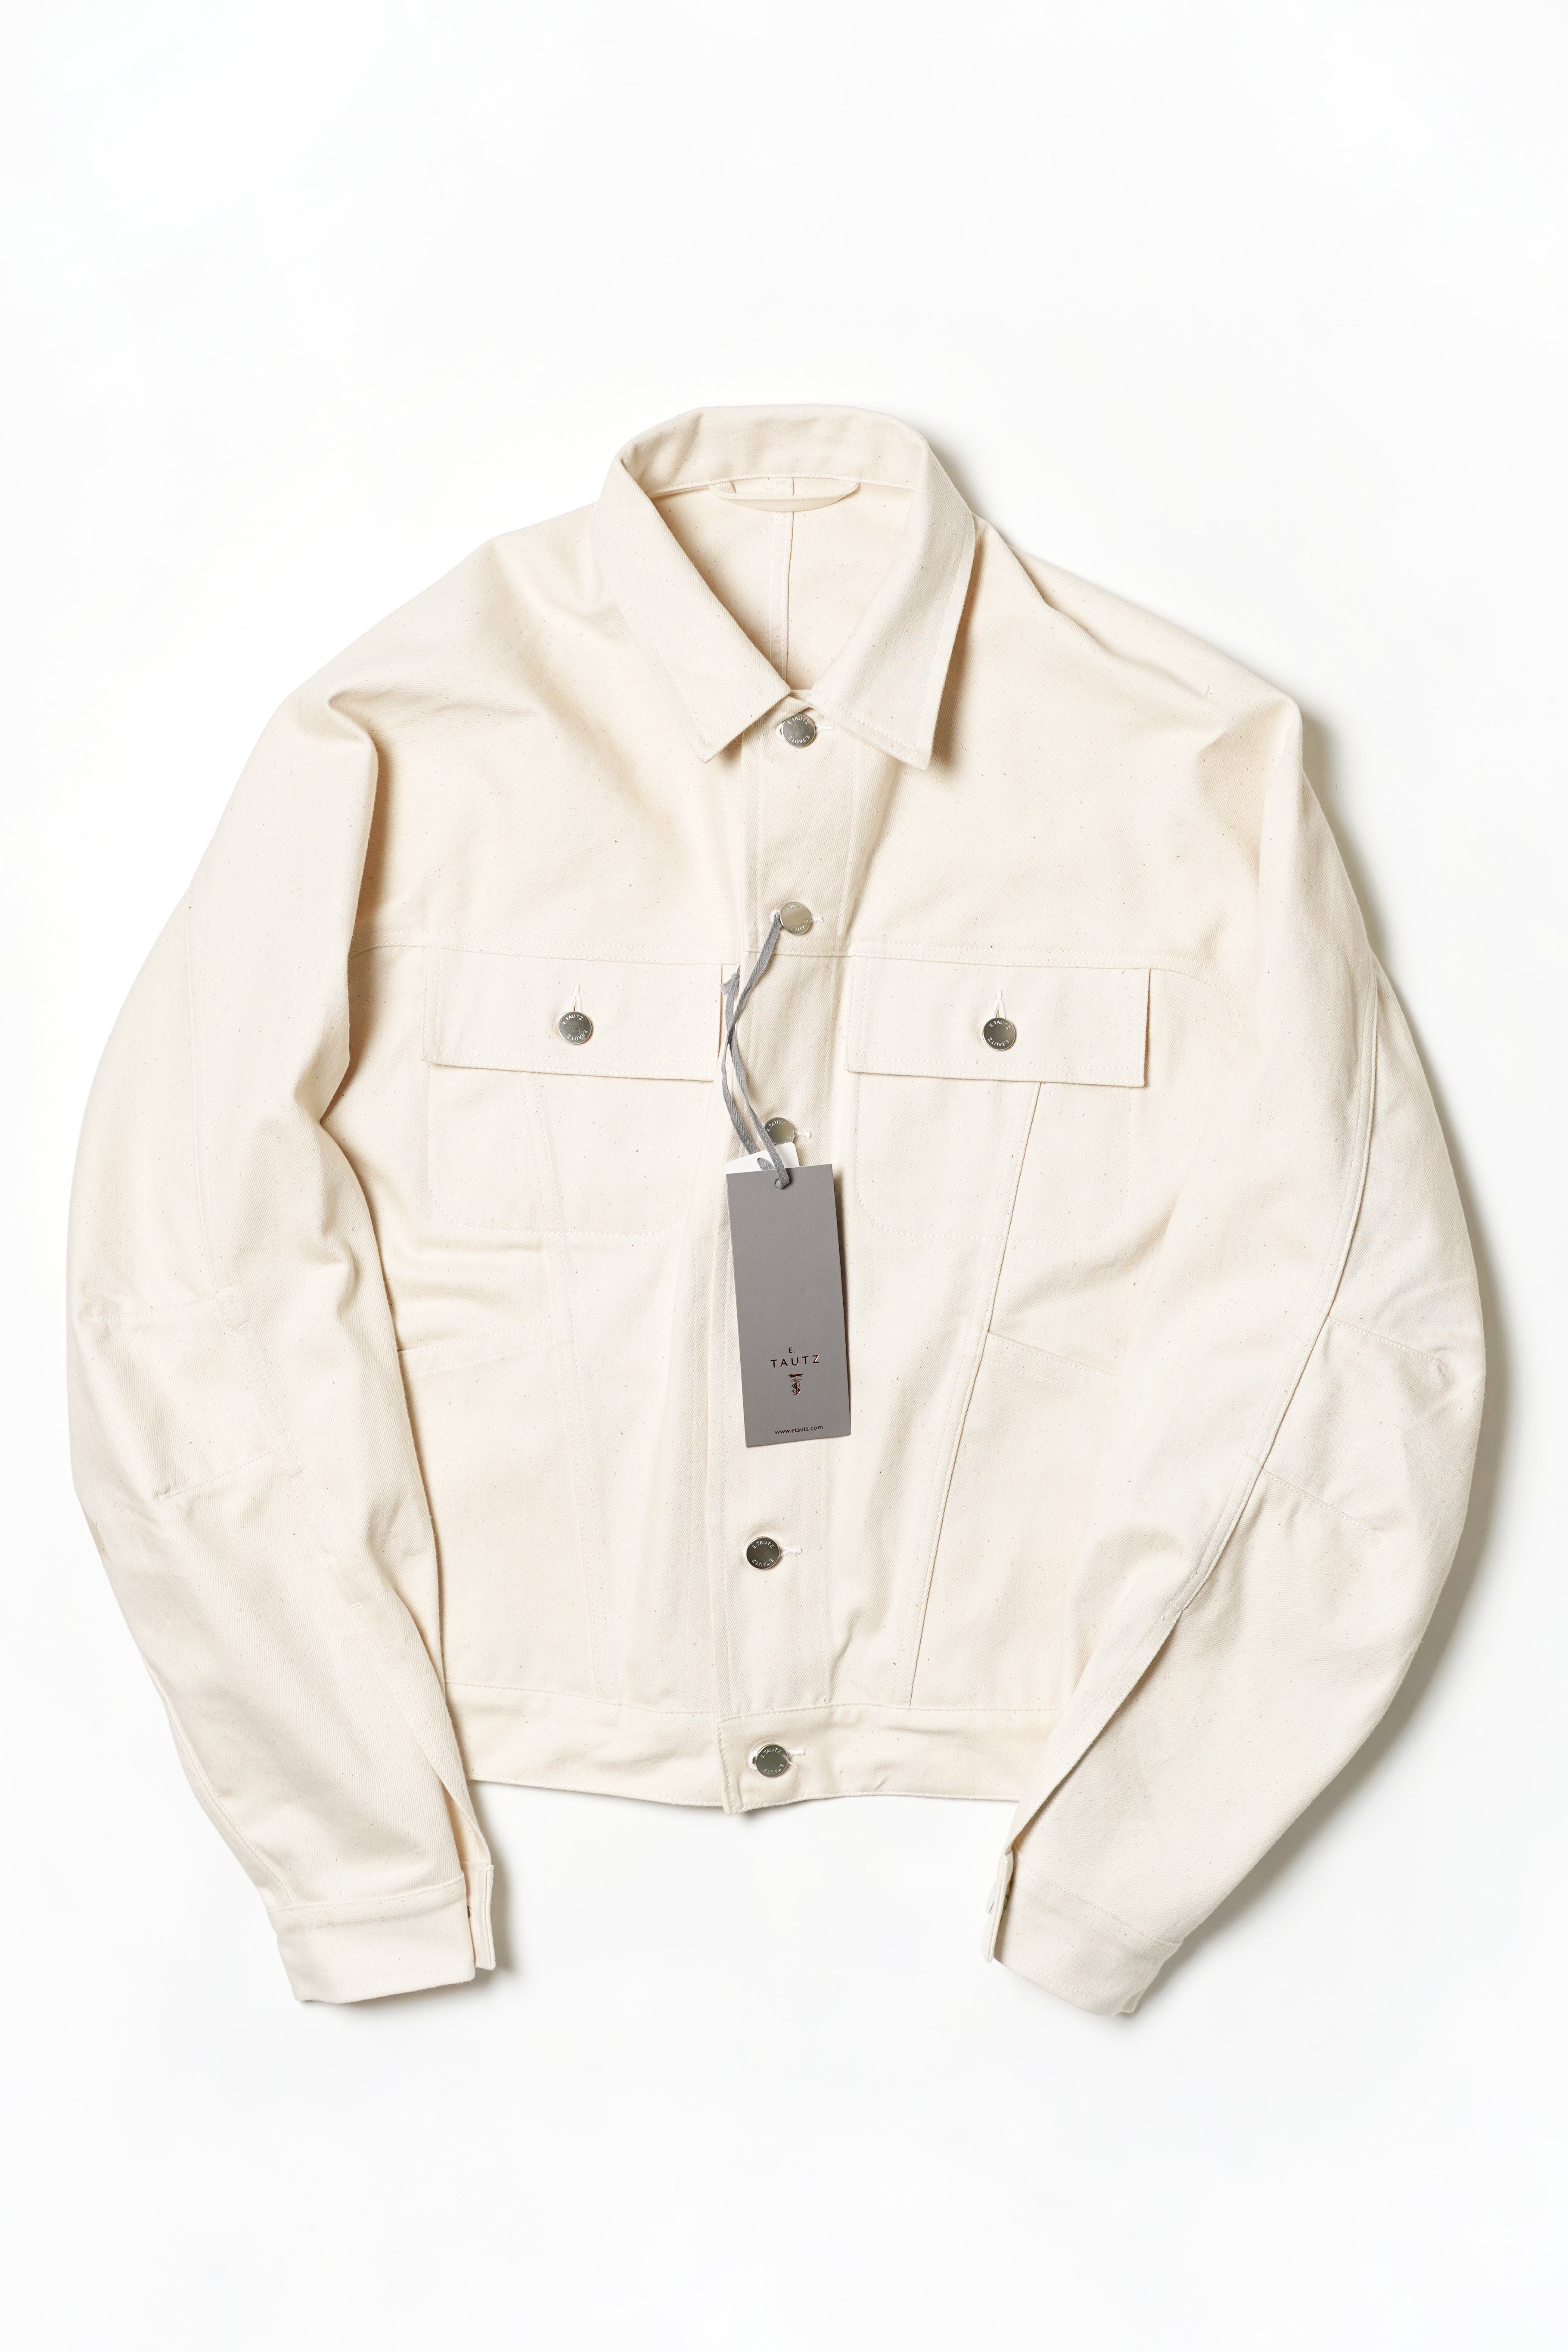 IVORY DESIGN DENIM JACKET